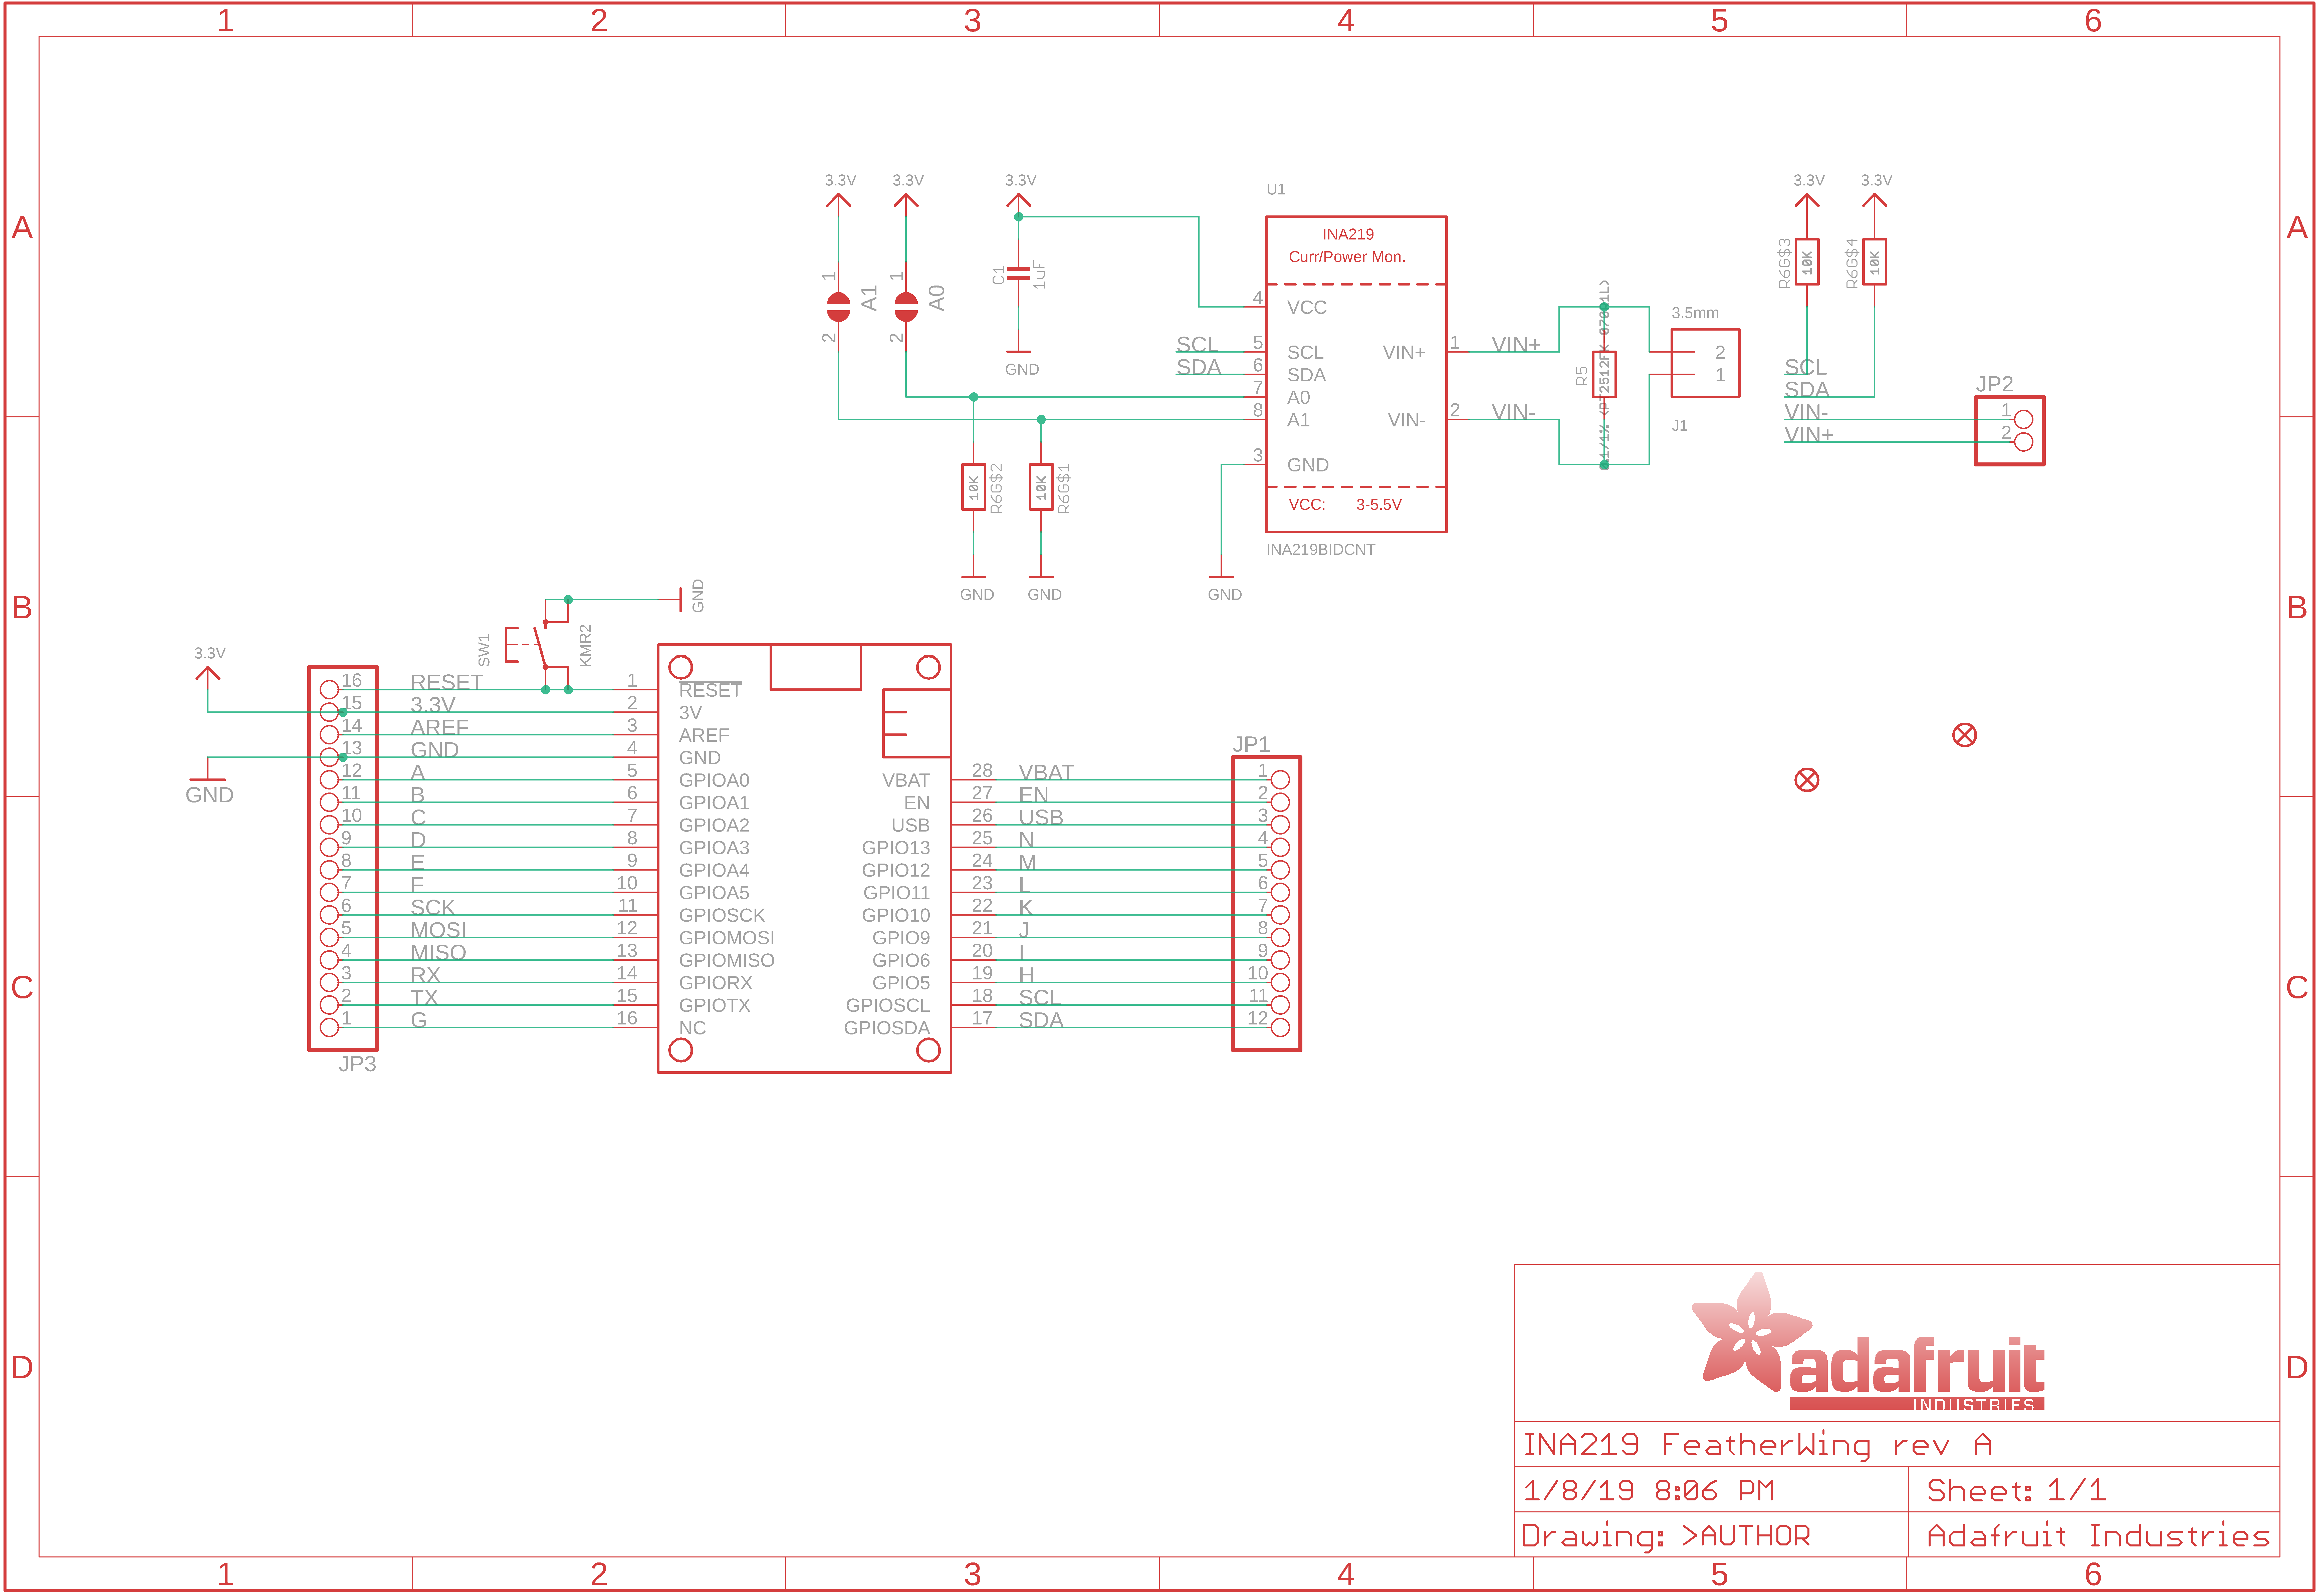 adafruit_products_Adafruit_INA219_FeatherWing_Sch.png